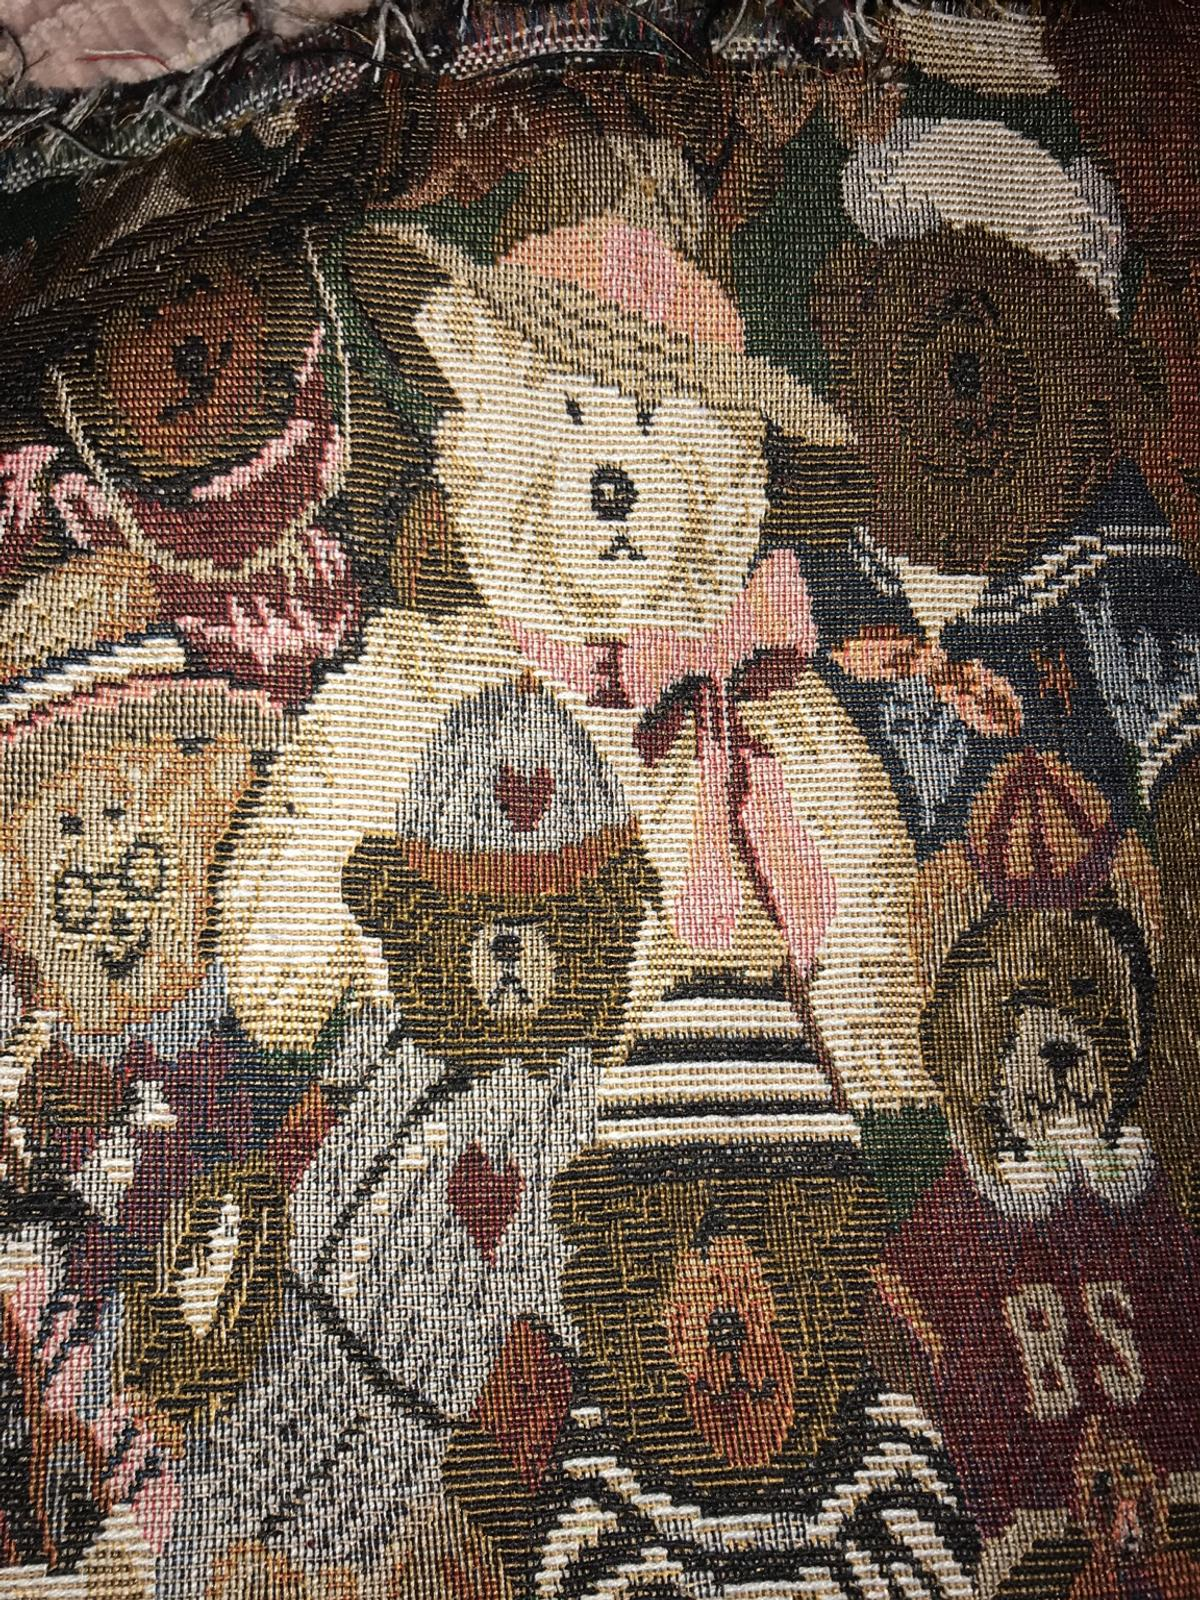 Teddy Bear Tapestry Fabric/Material